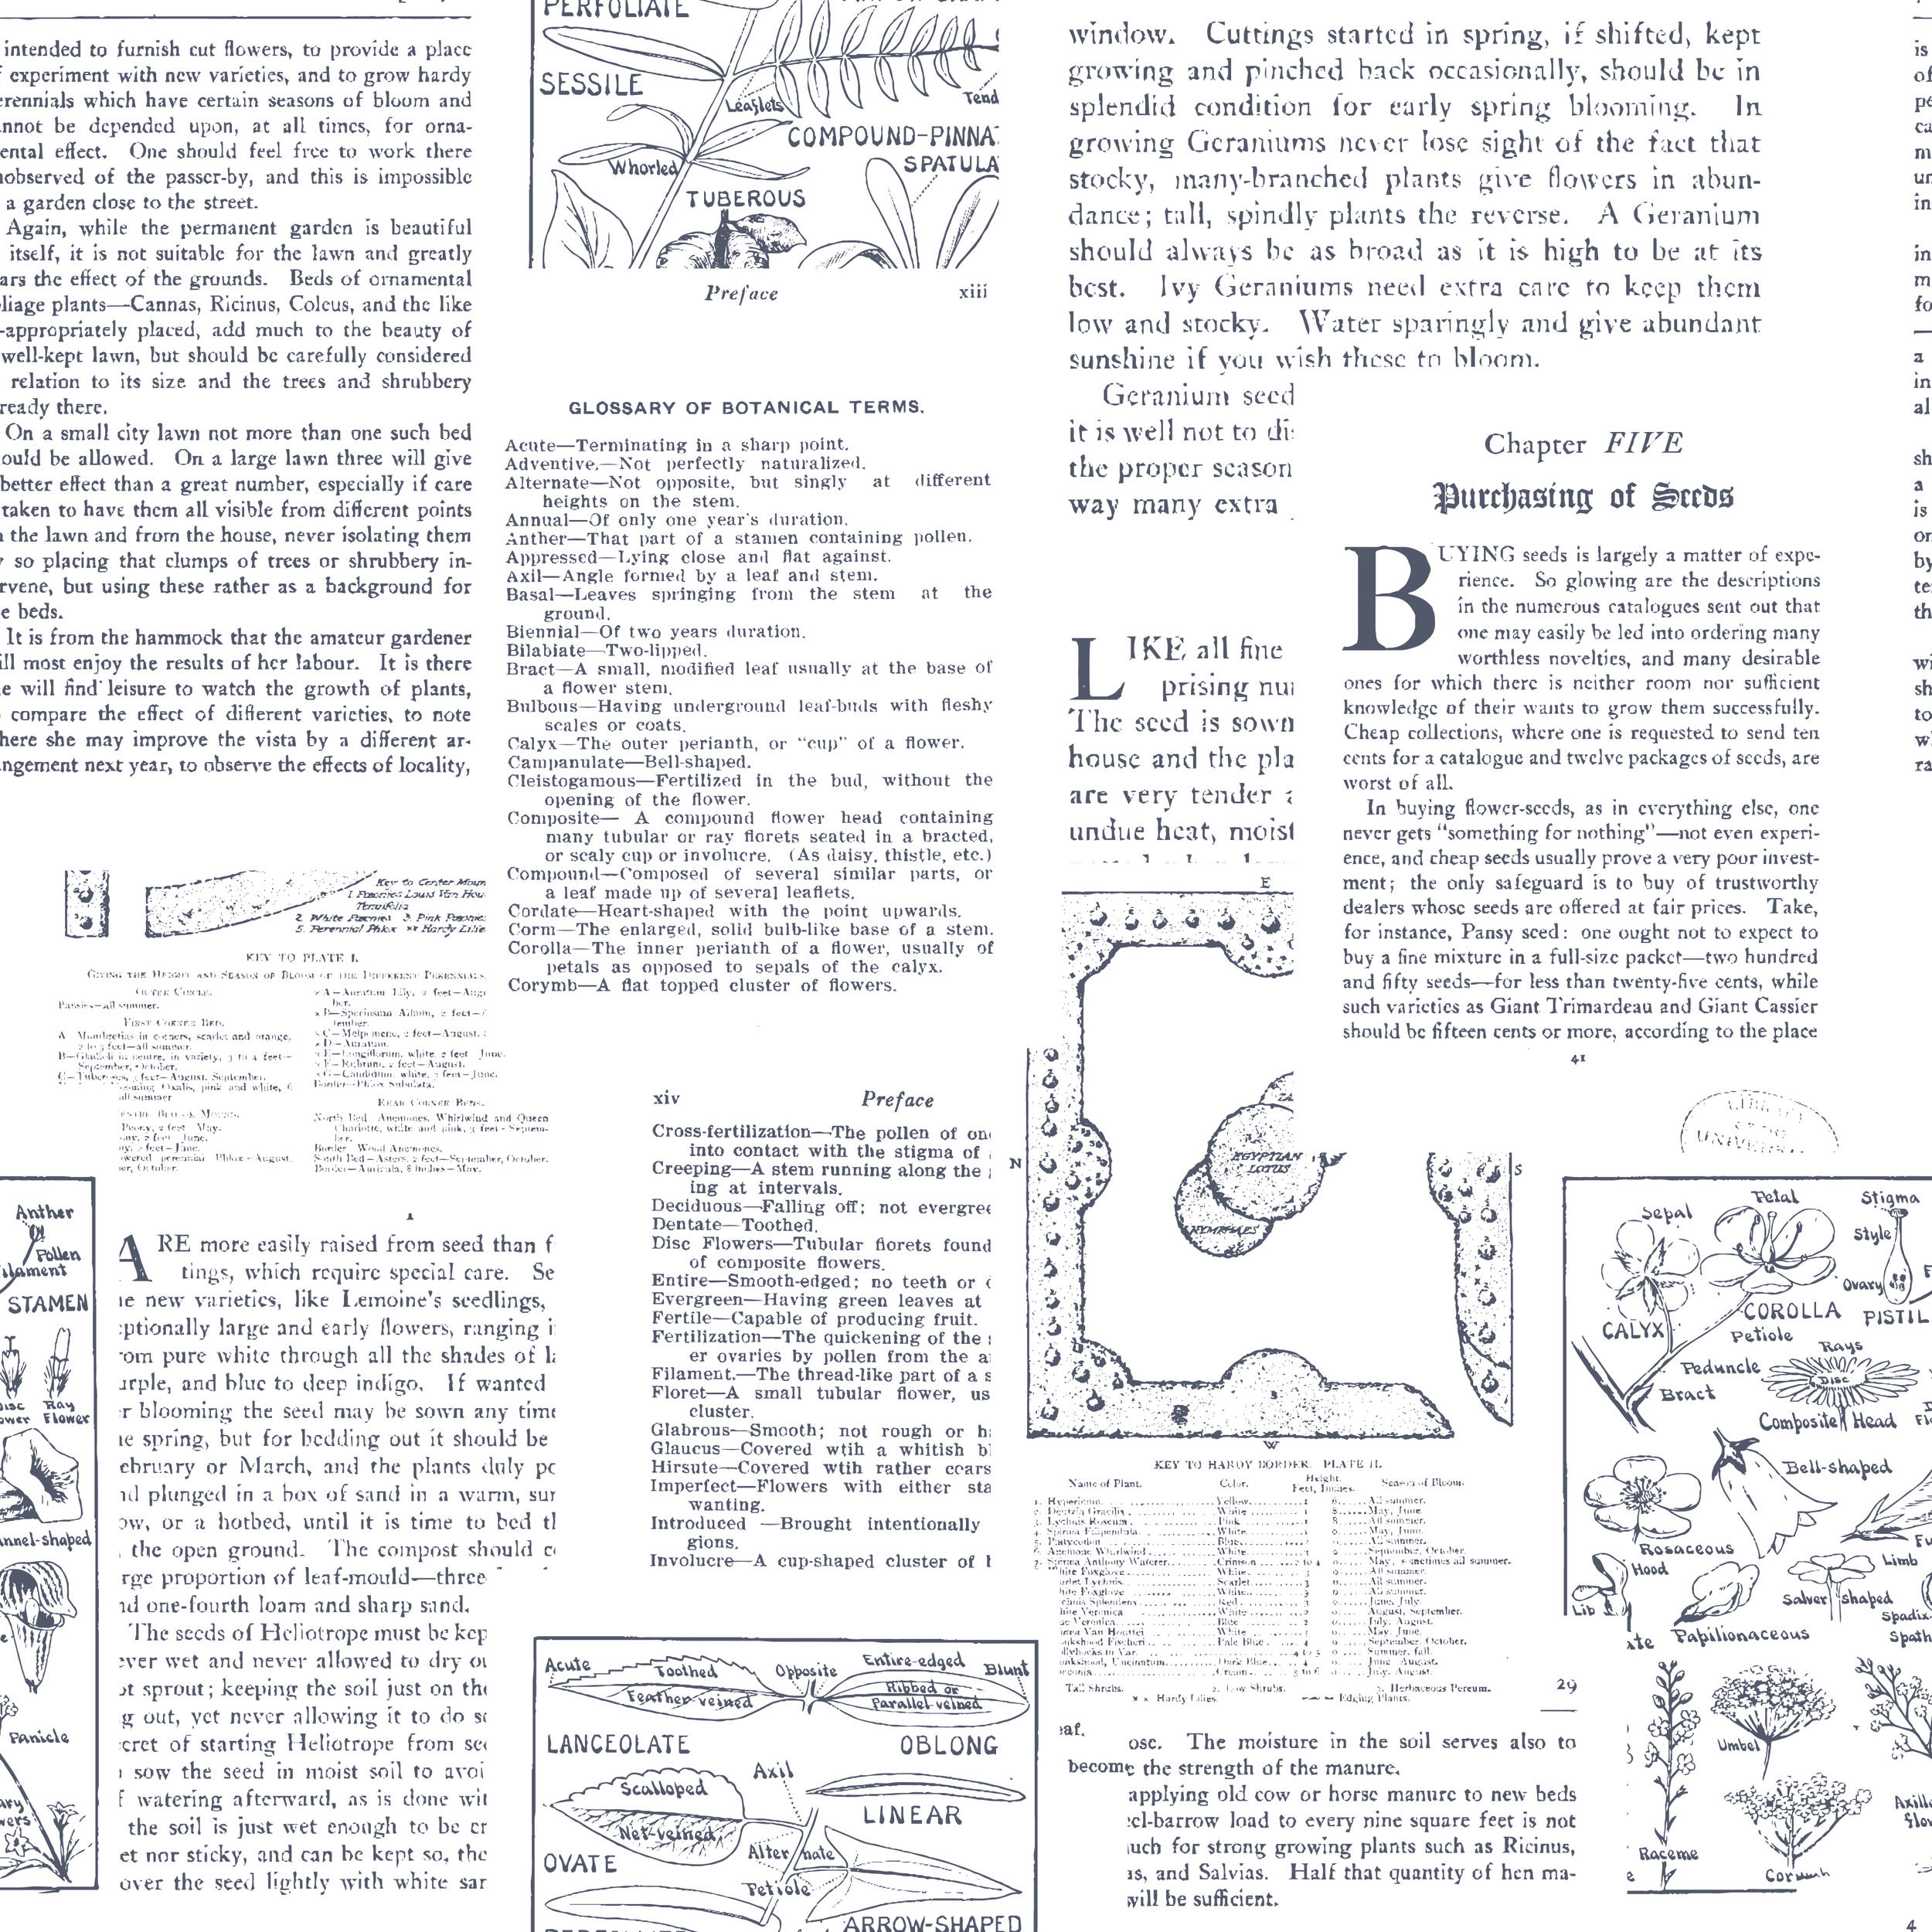 book pages-01-01.jpg